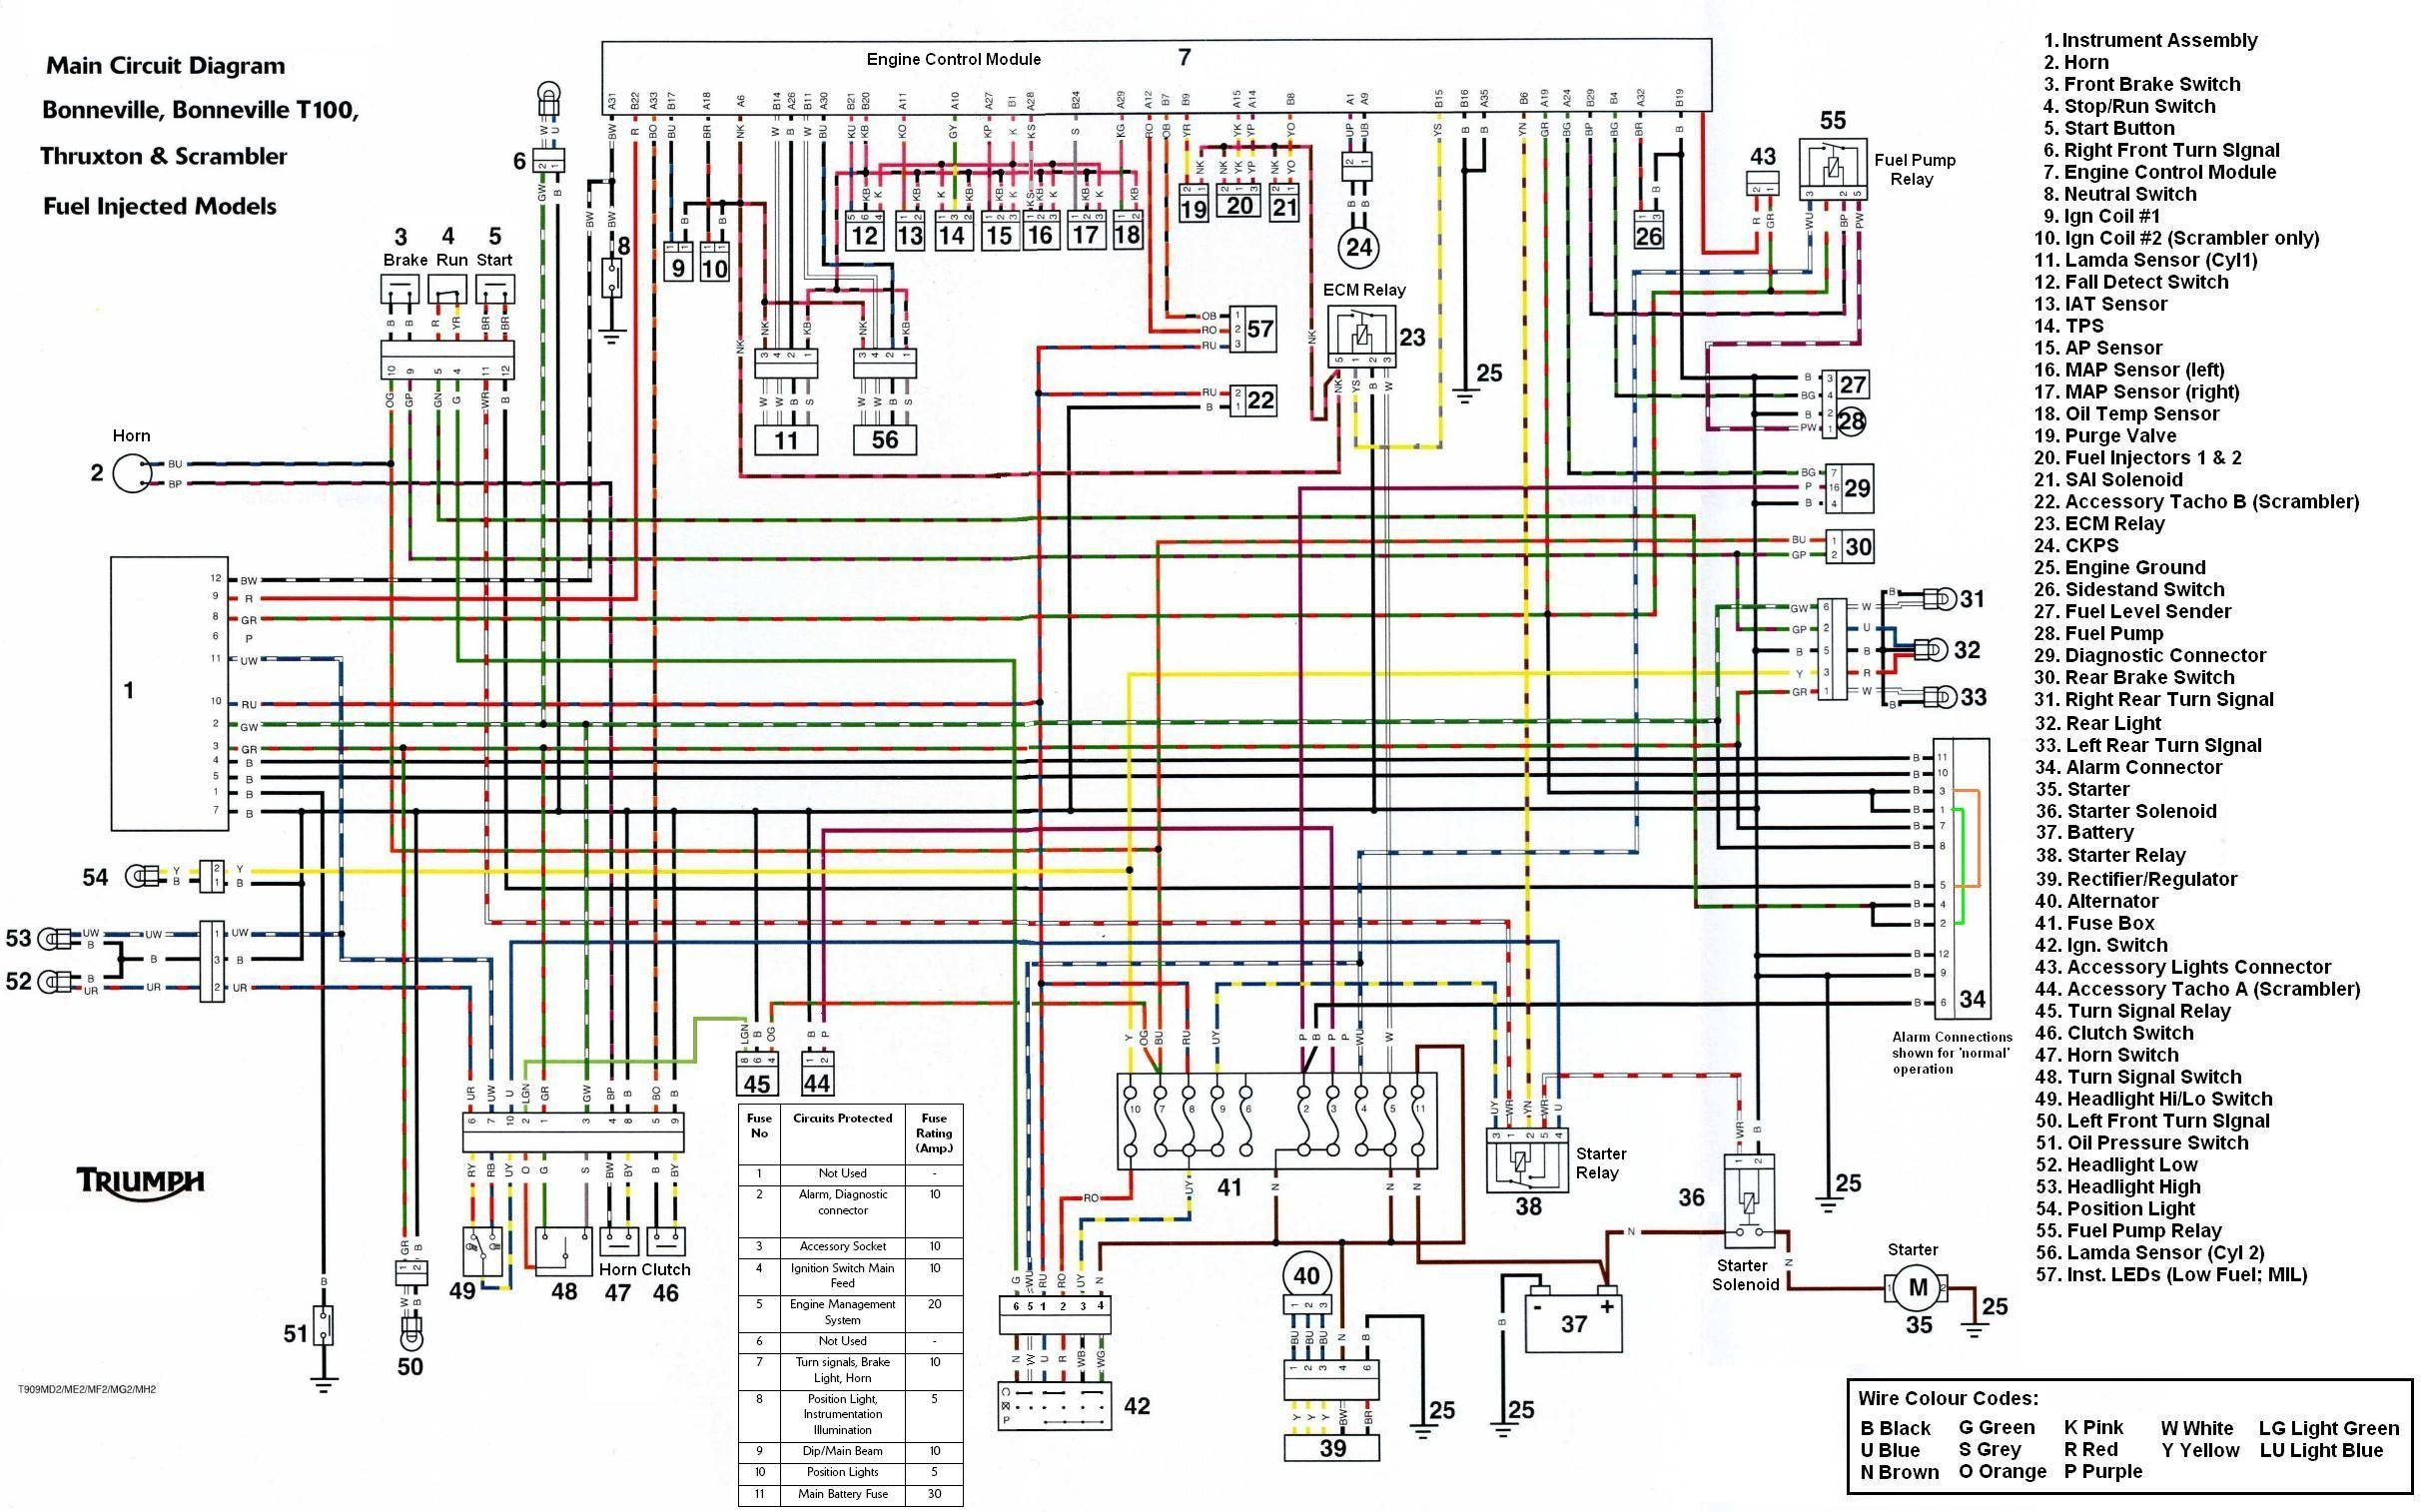 Scrambler Wiring Diagram Another Blog About Ducati Cdi Triumph Bonneville T100 Thruxton Evan Rh Pinterest Com 2002 Polaris